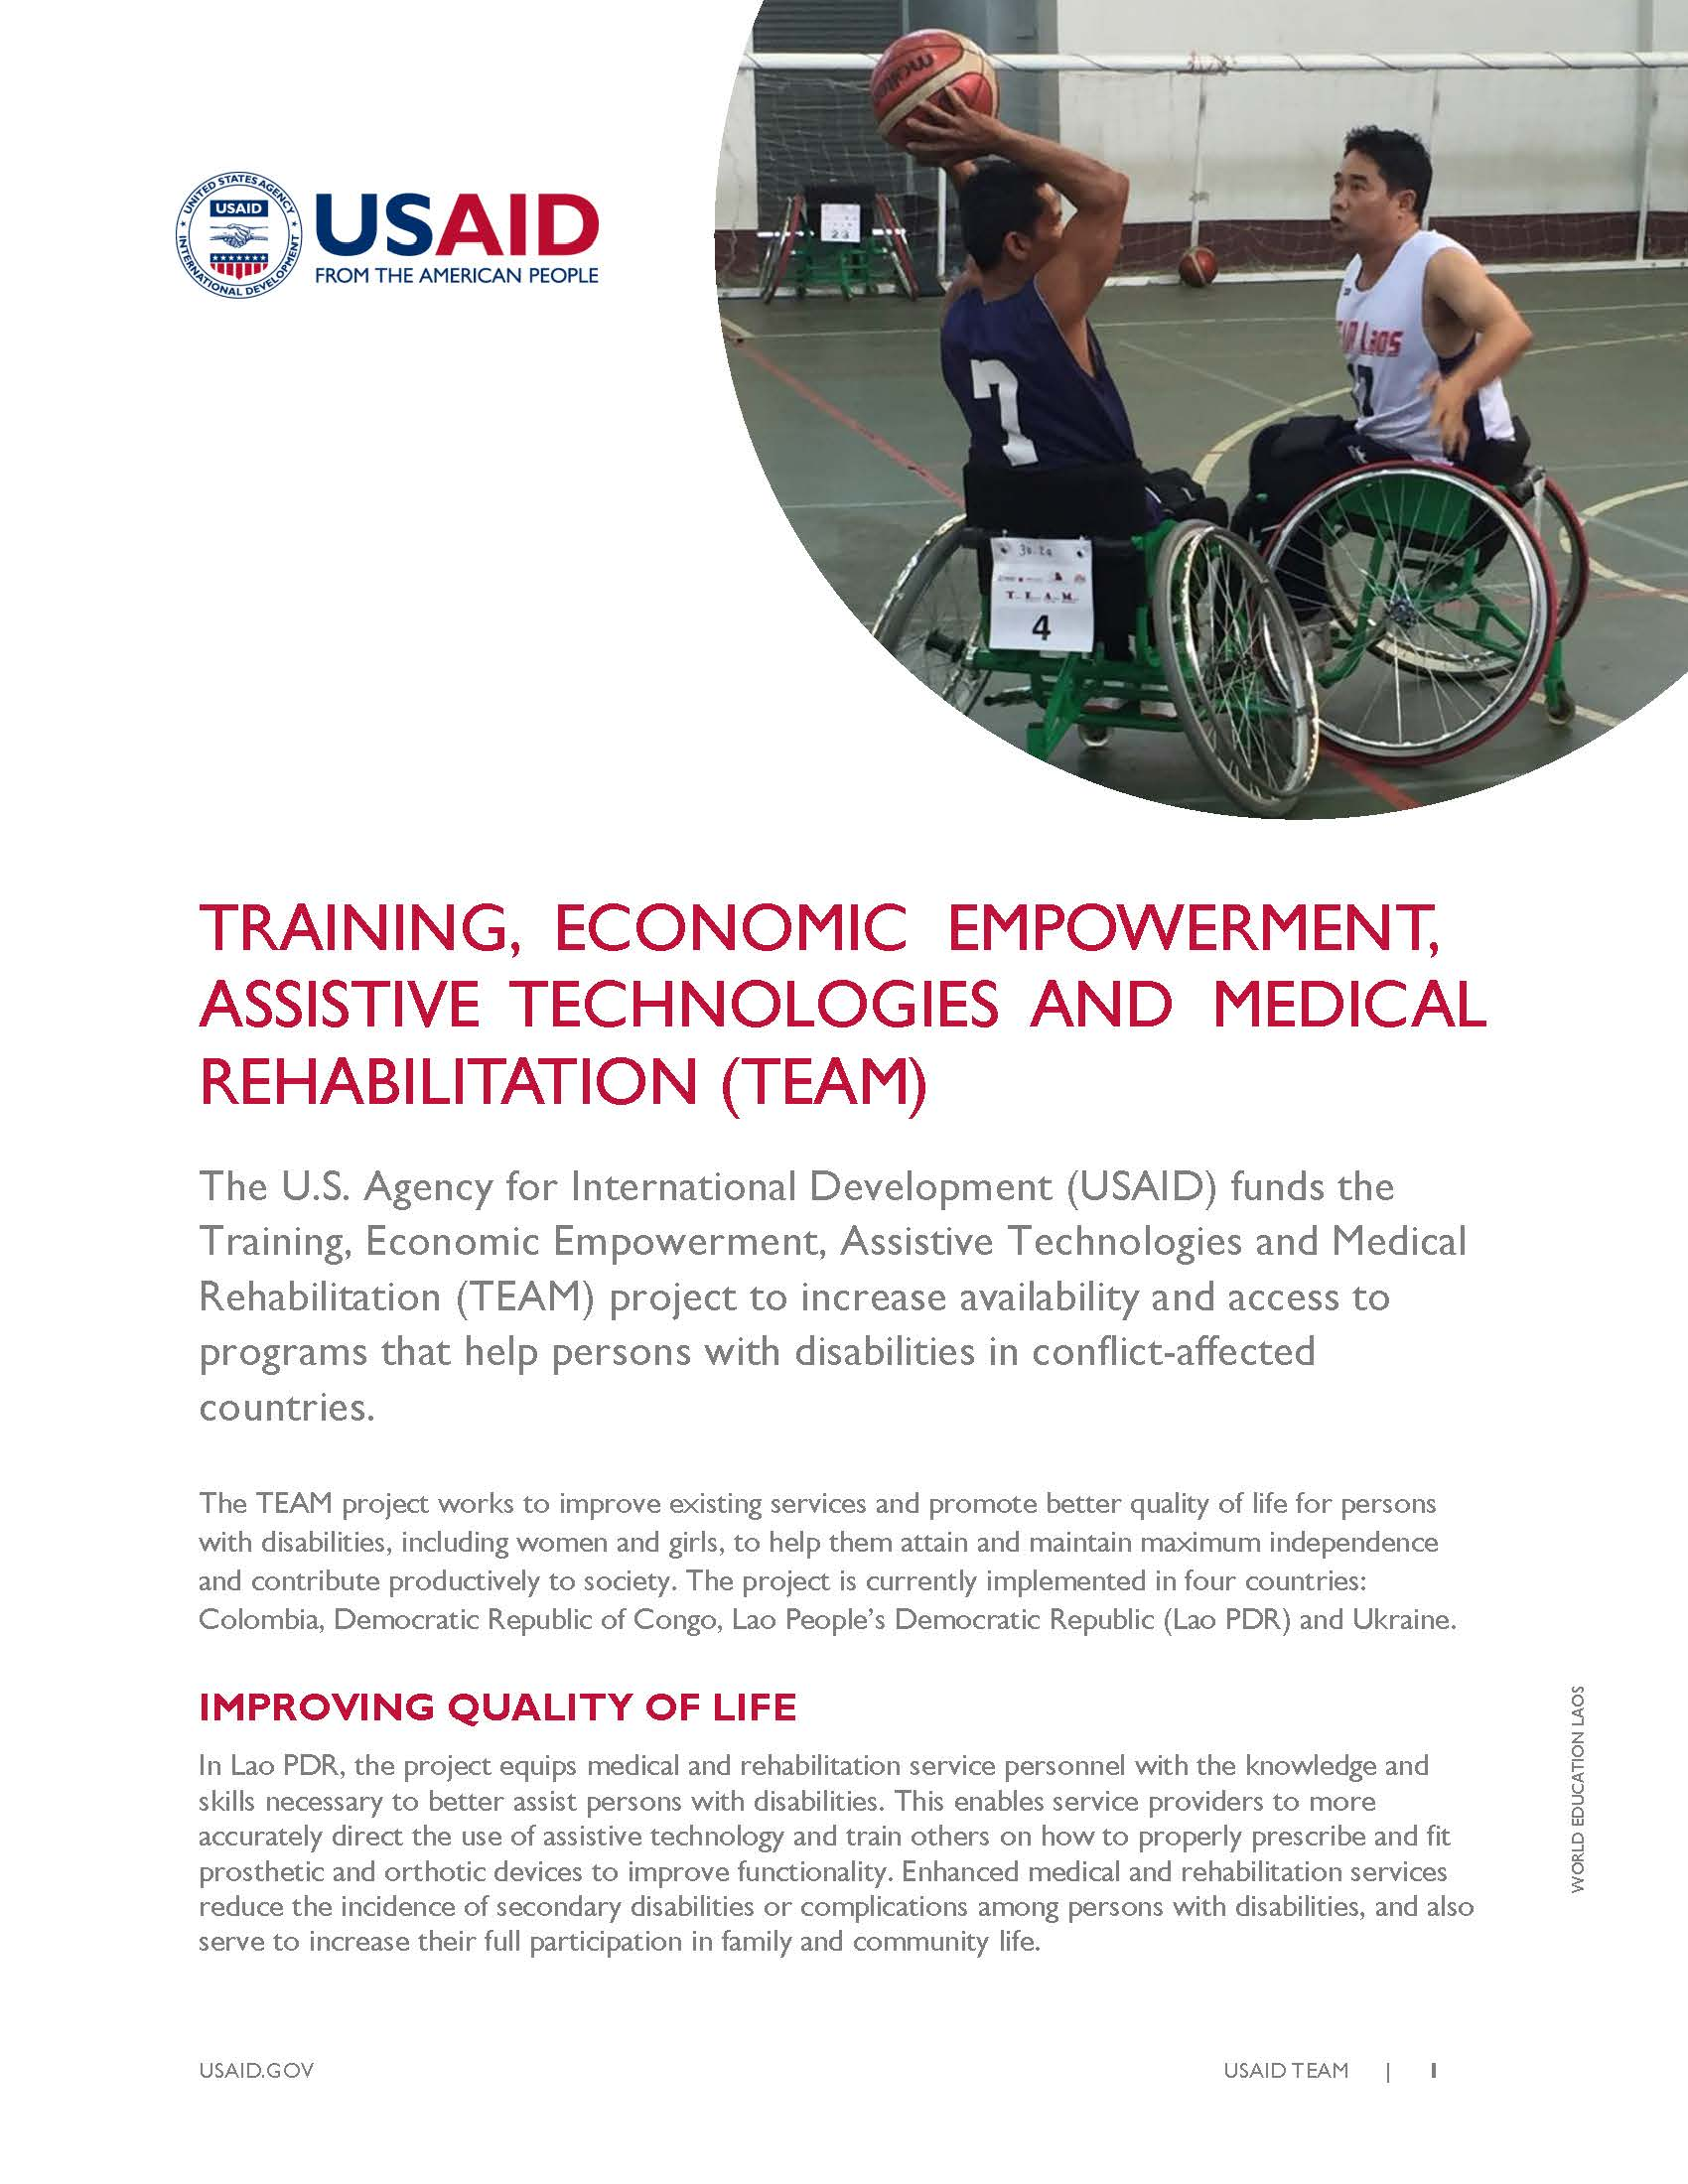 Training, Economic Empowerment, Assistive Technologies and Medical Rehabilitation (TEAM)